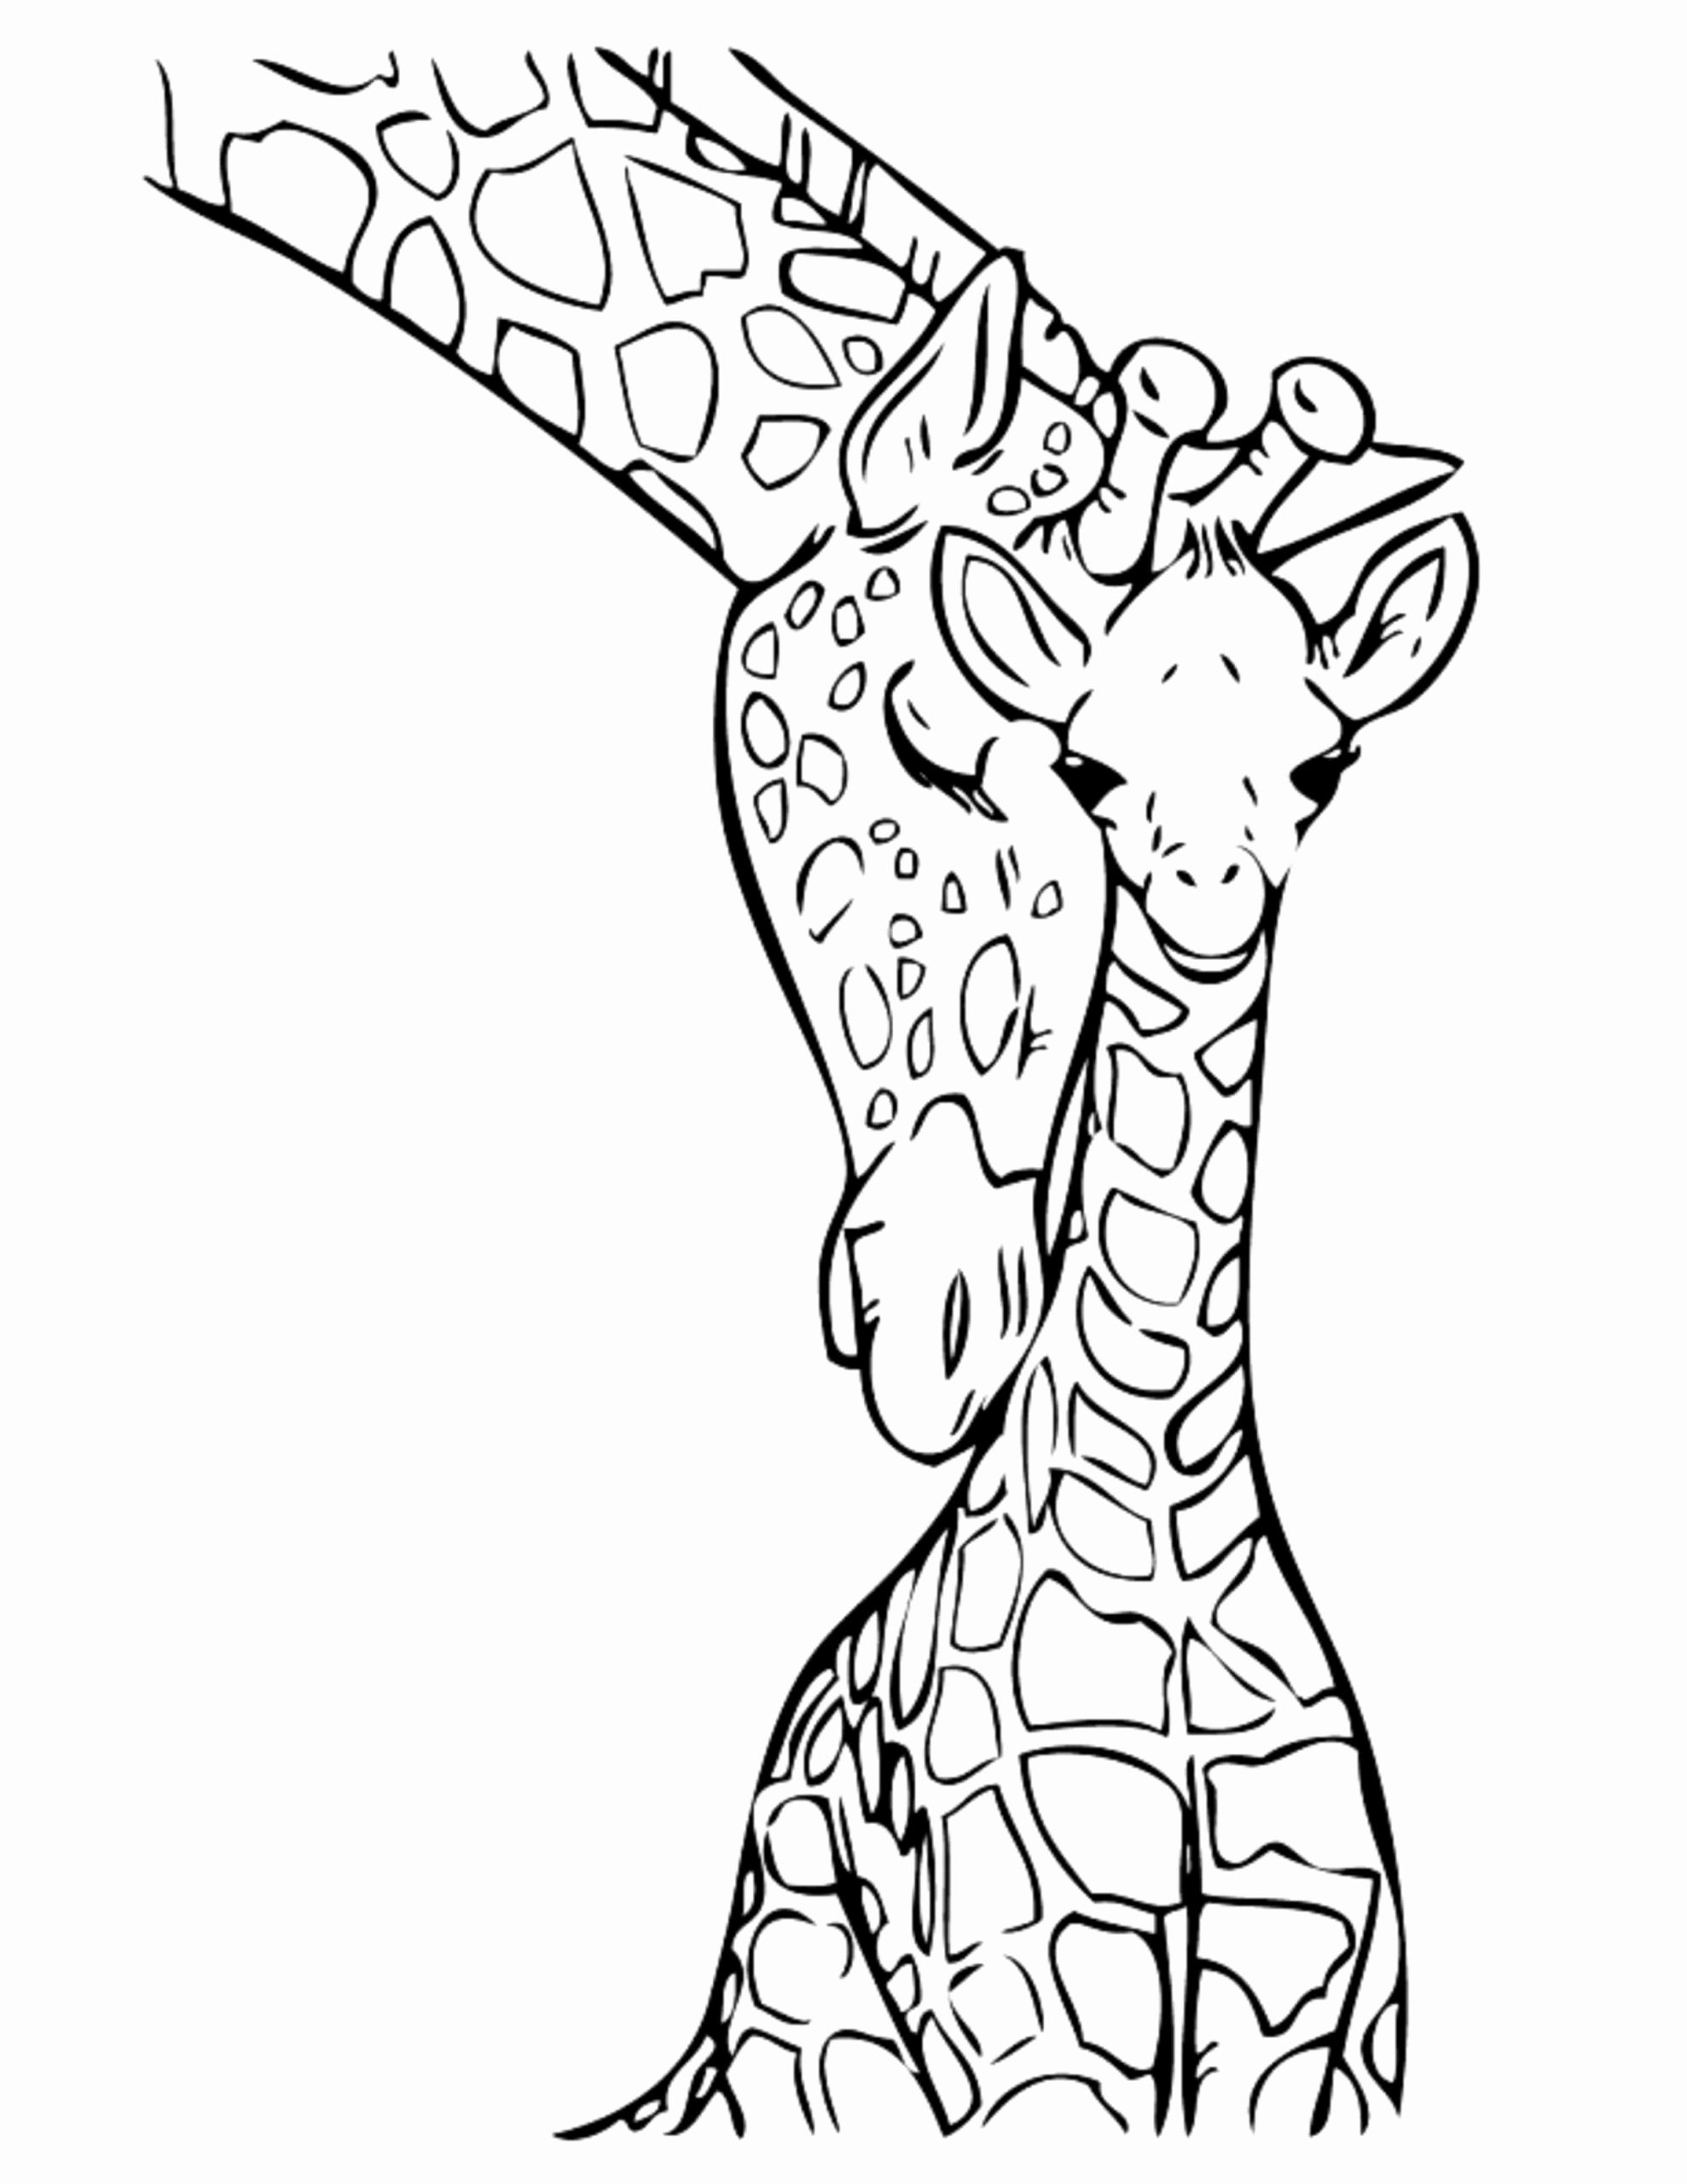 Kids Animal Coloring Pages Free In 2020 Giraffe Coloring Pages Animal Coloring Books Jungle Coloring Pages